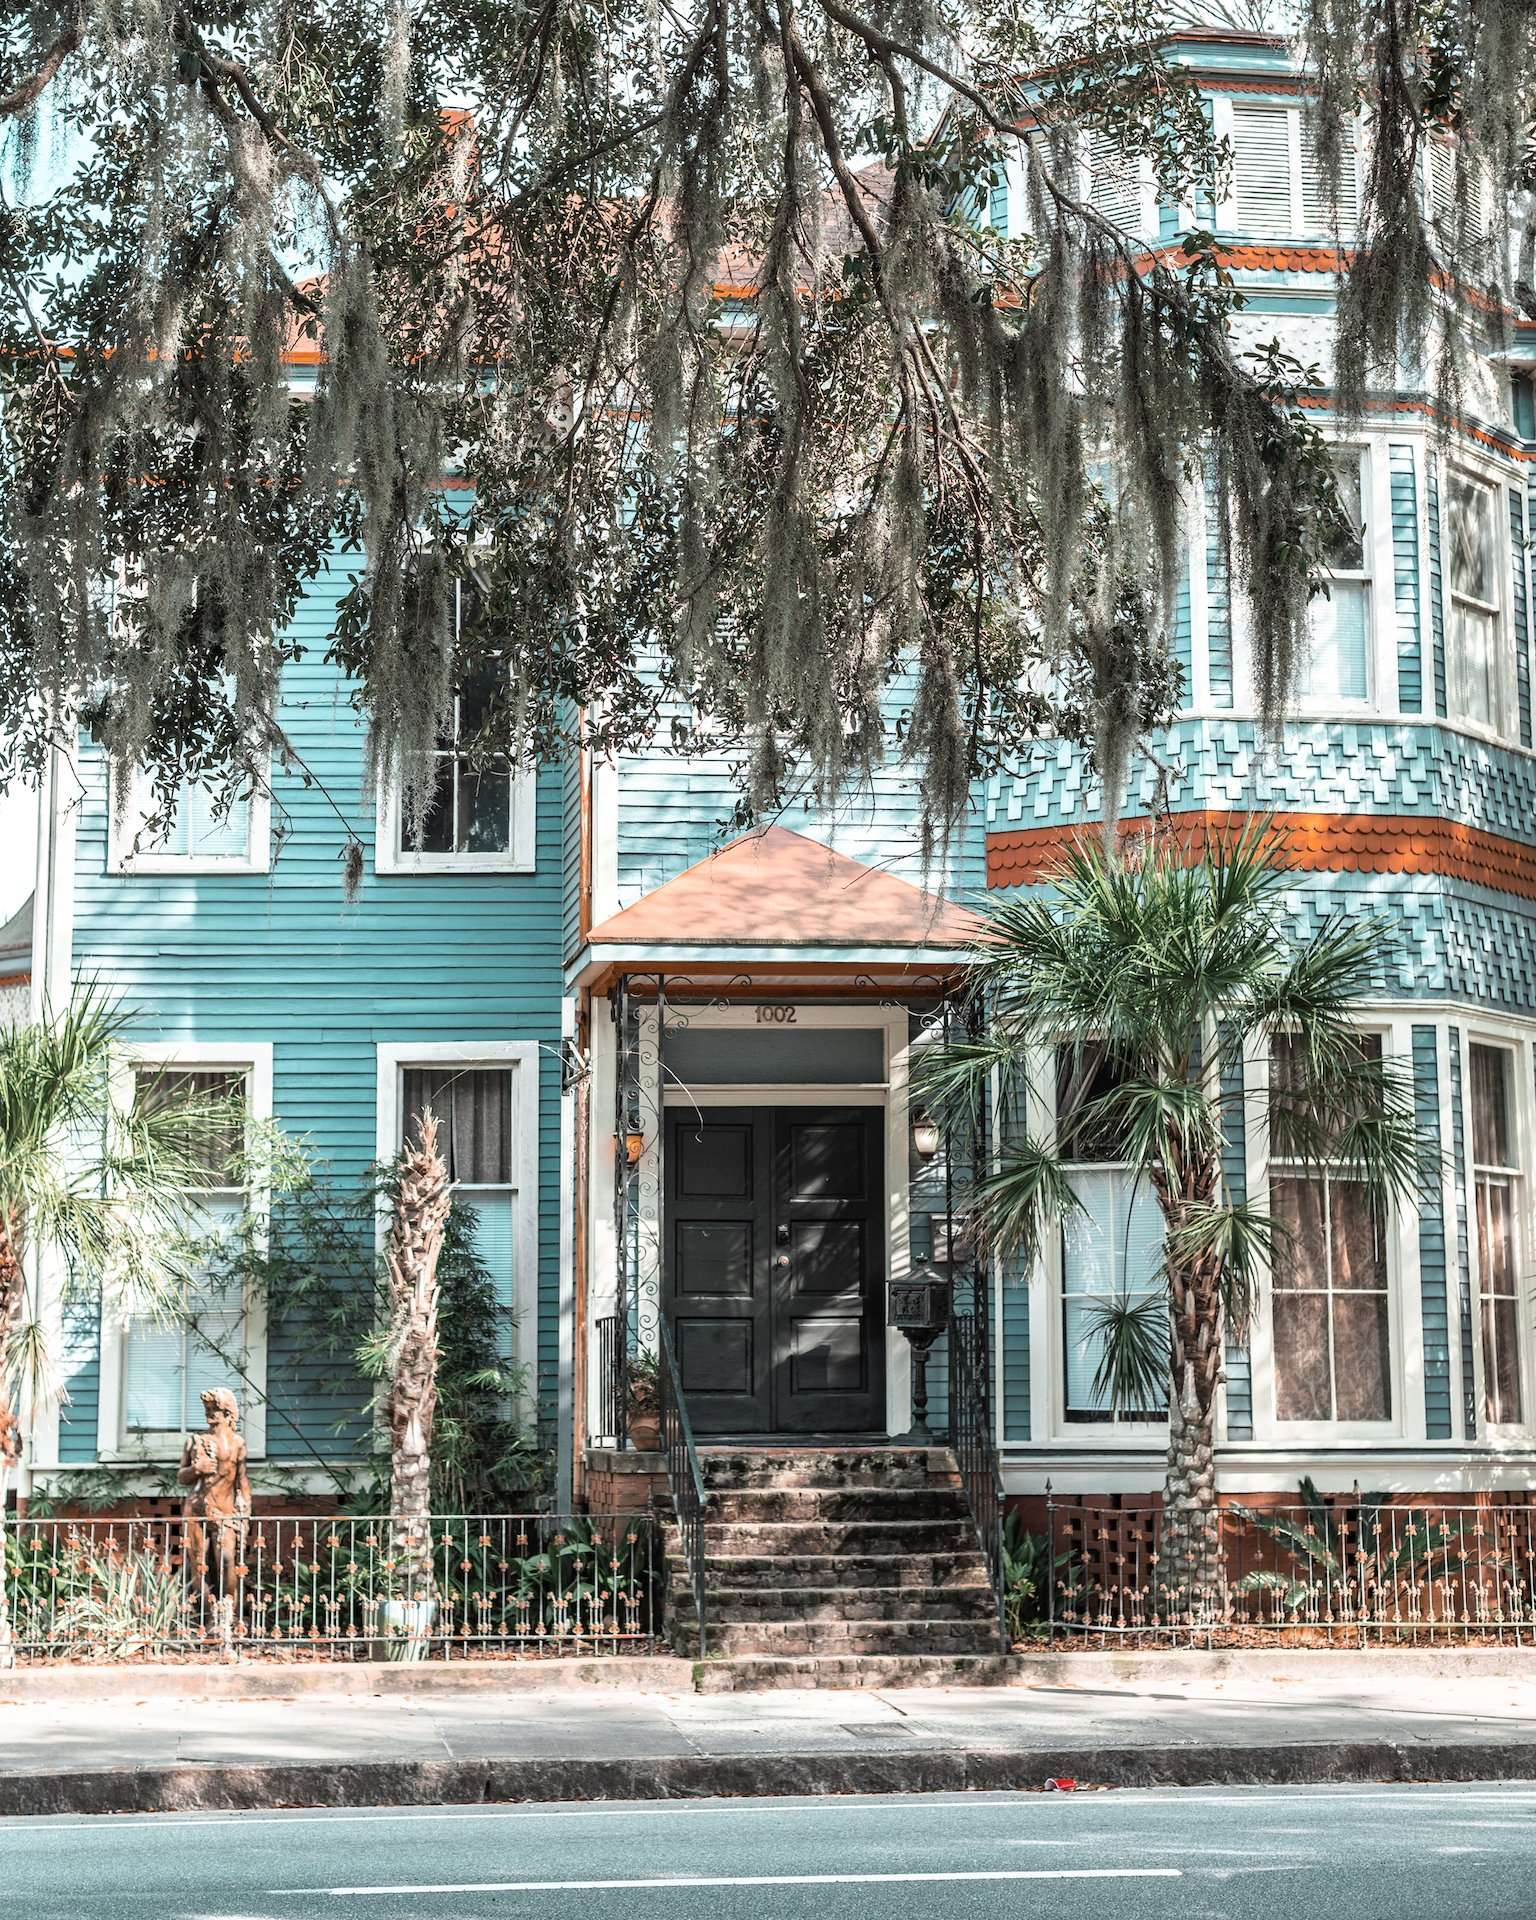 blue house on Drayton Street, Savannah